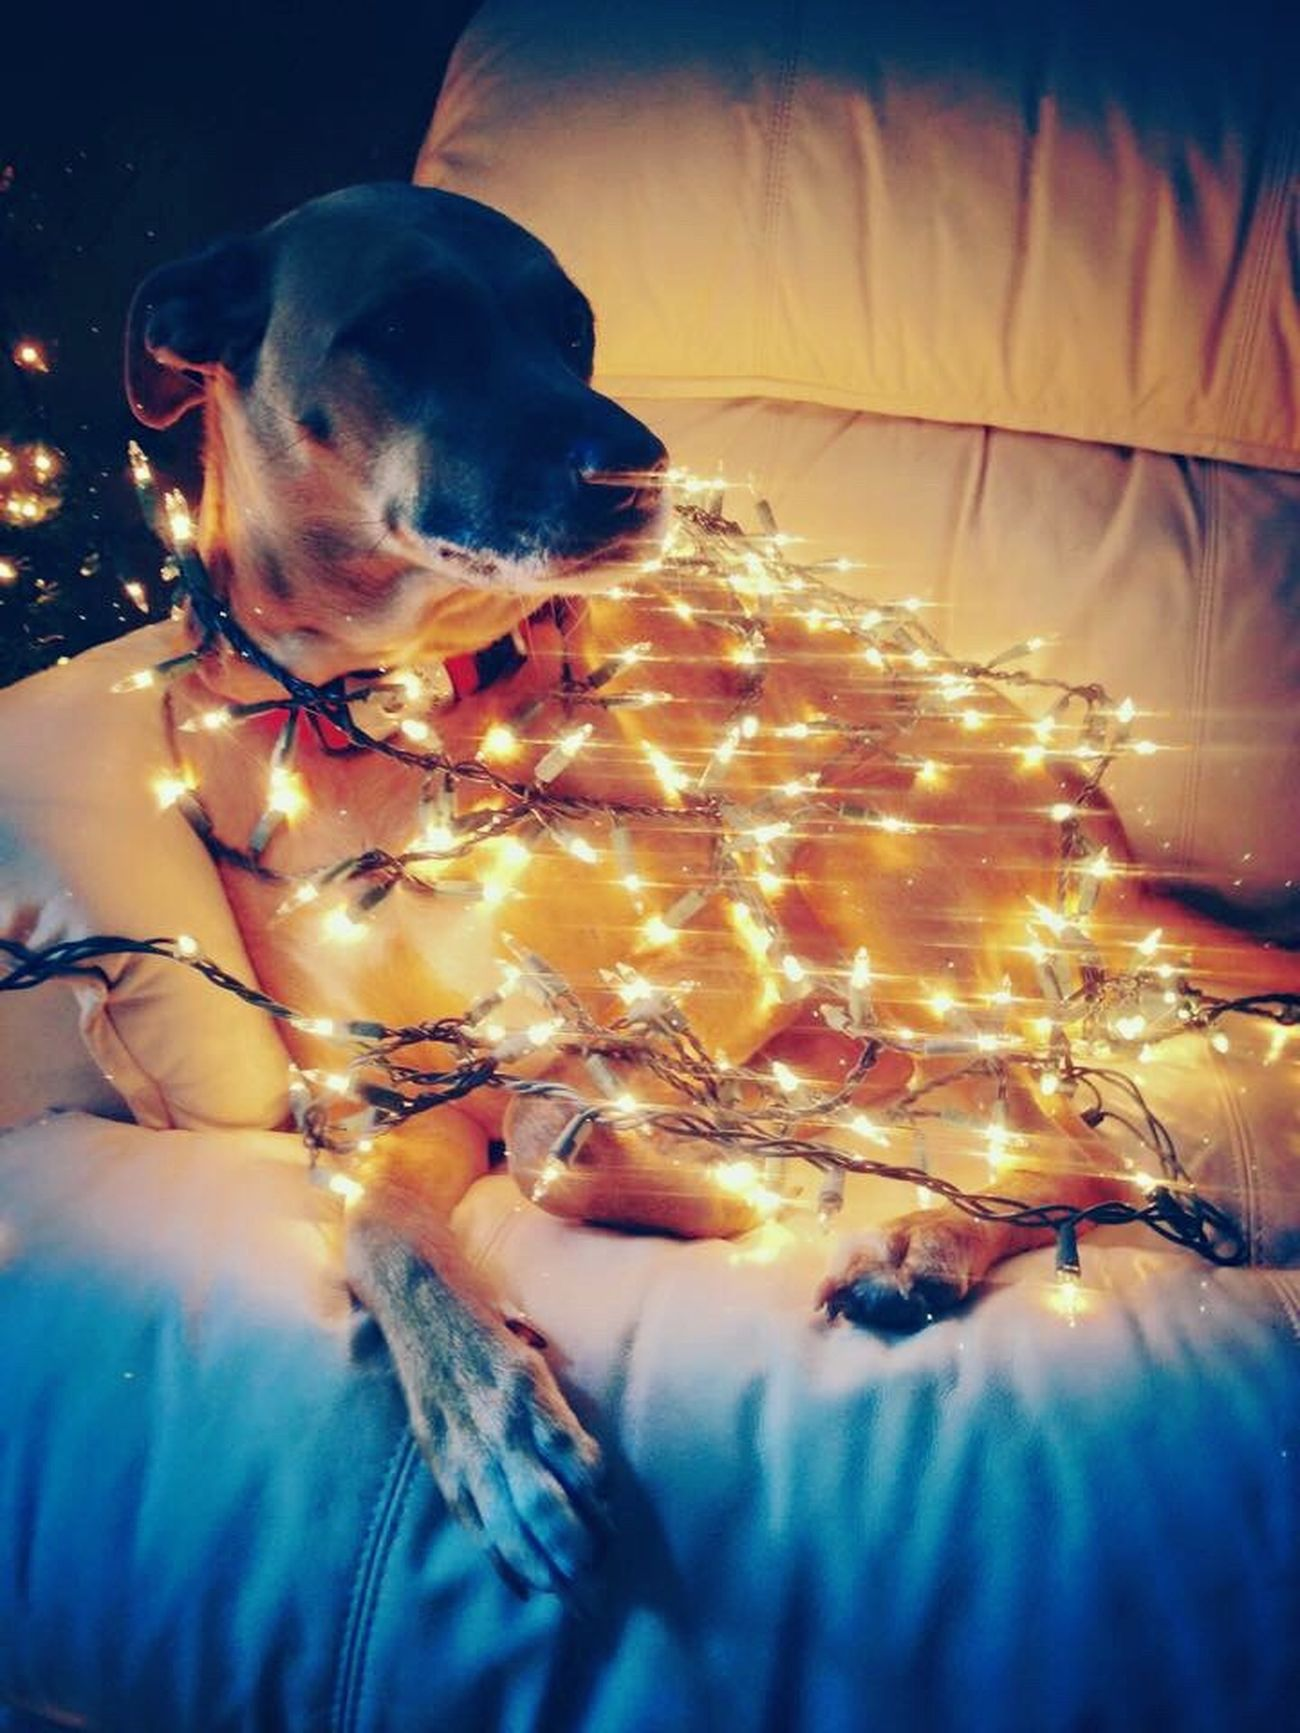 Dog Christmas Lights Christmas Lights Christmastime Shesconfused Sadiebaby